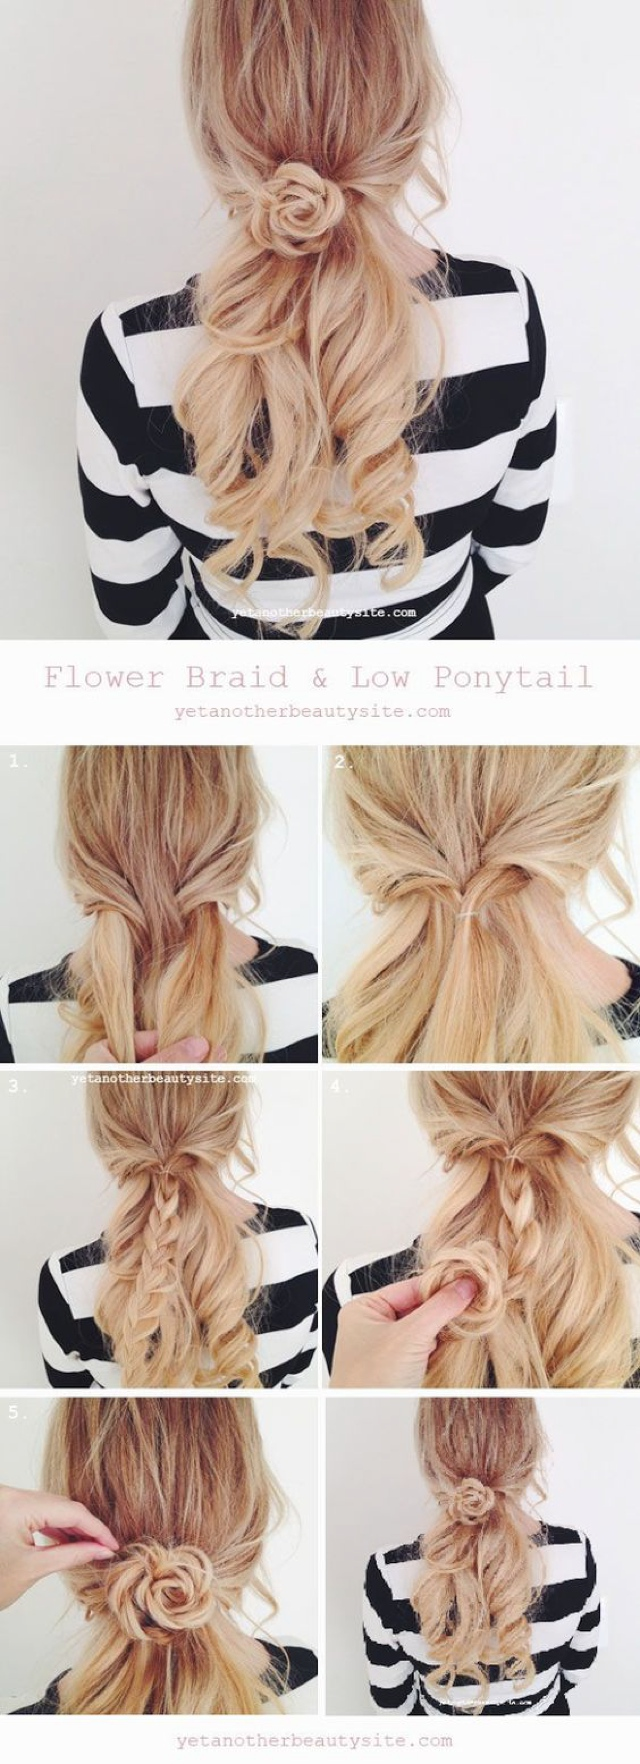 flower-braid-low-ponytail